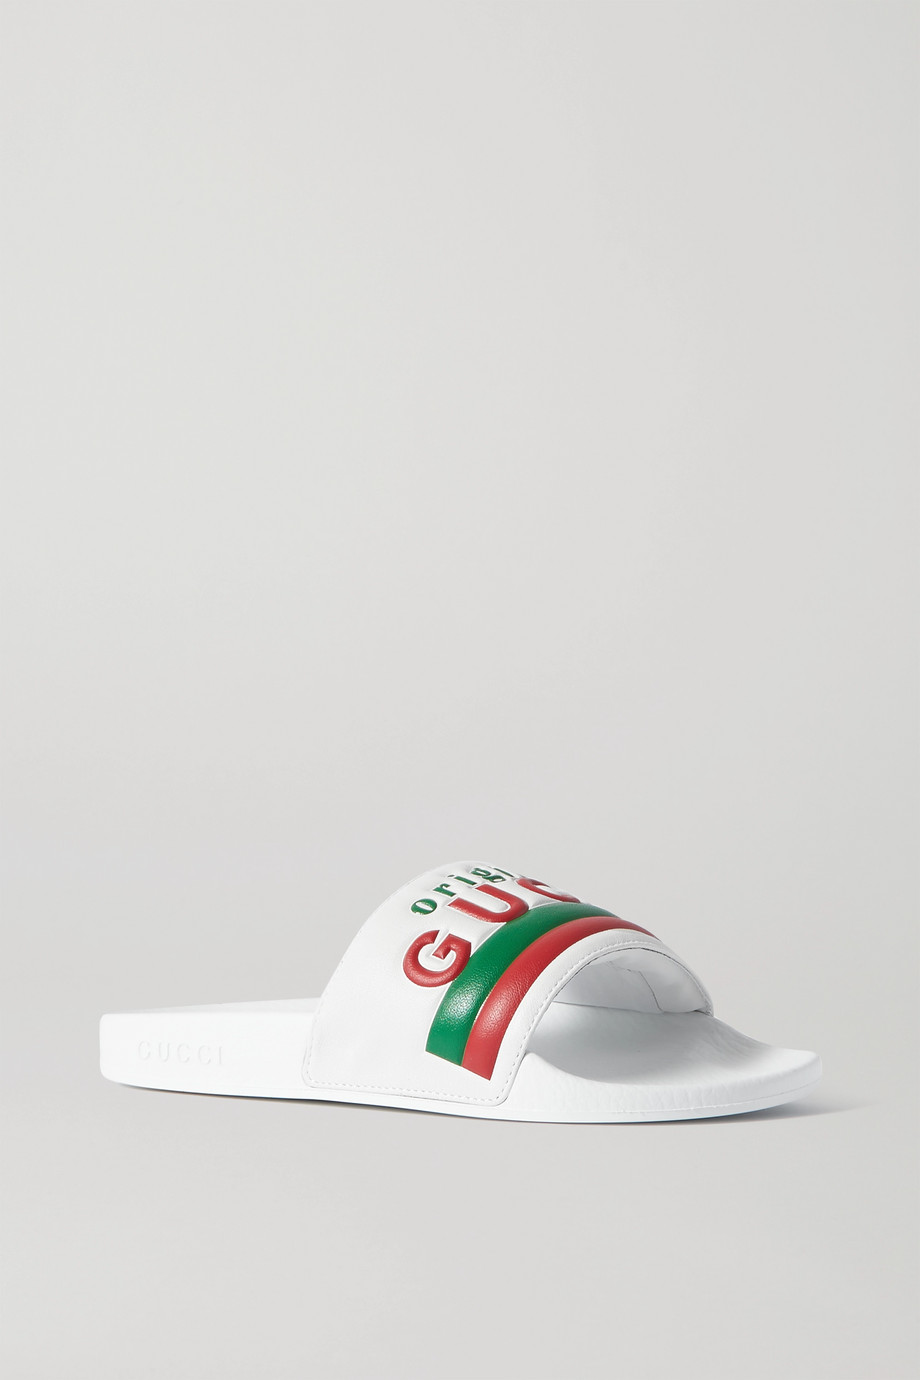 GUCCI Pursuit logo-embossed leather slides